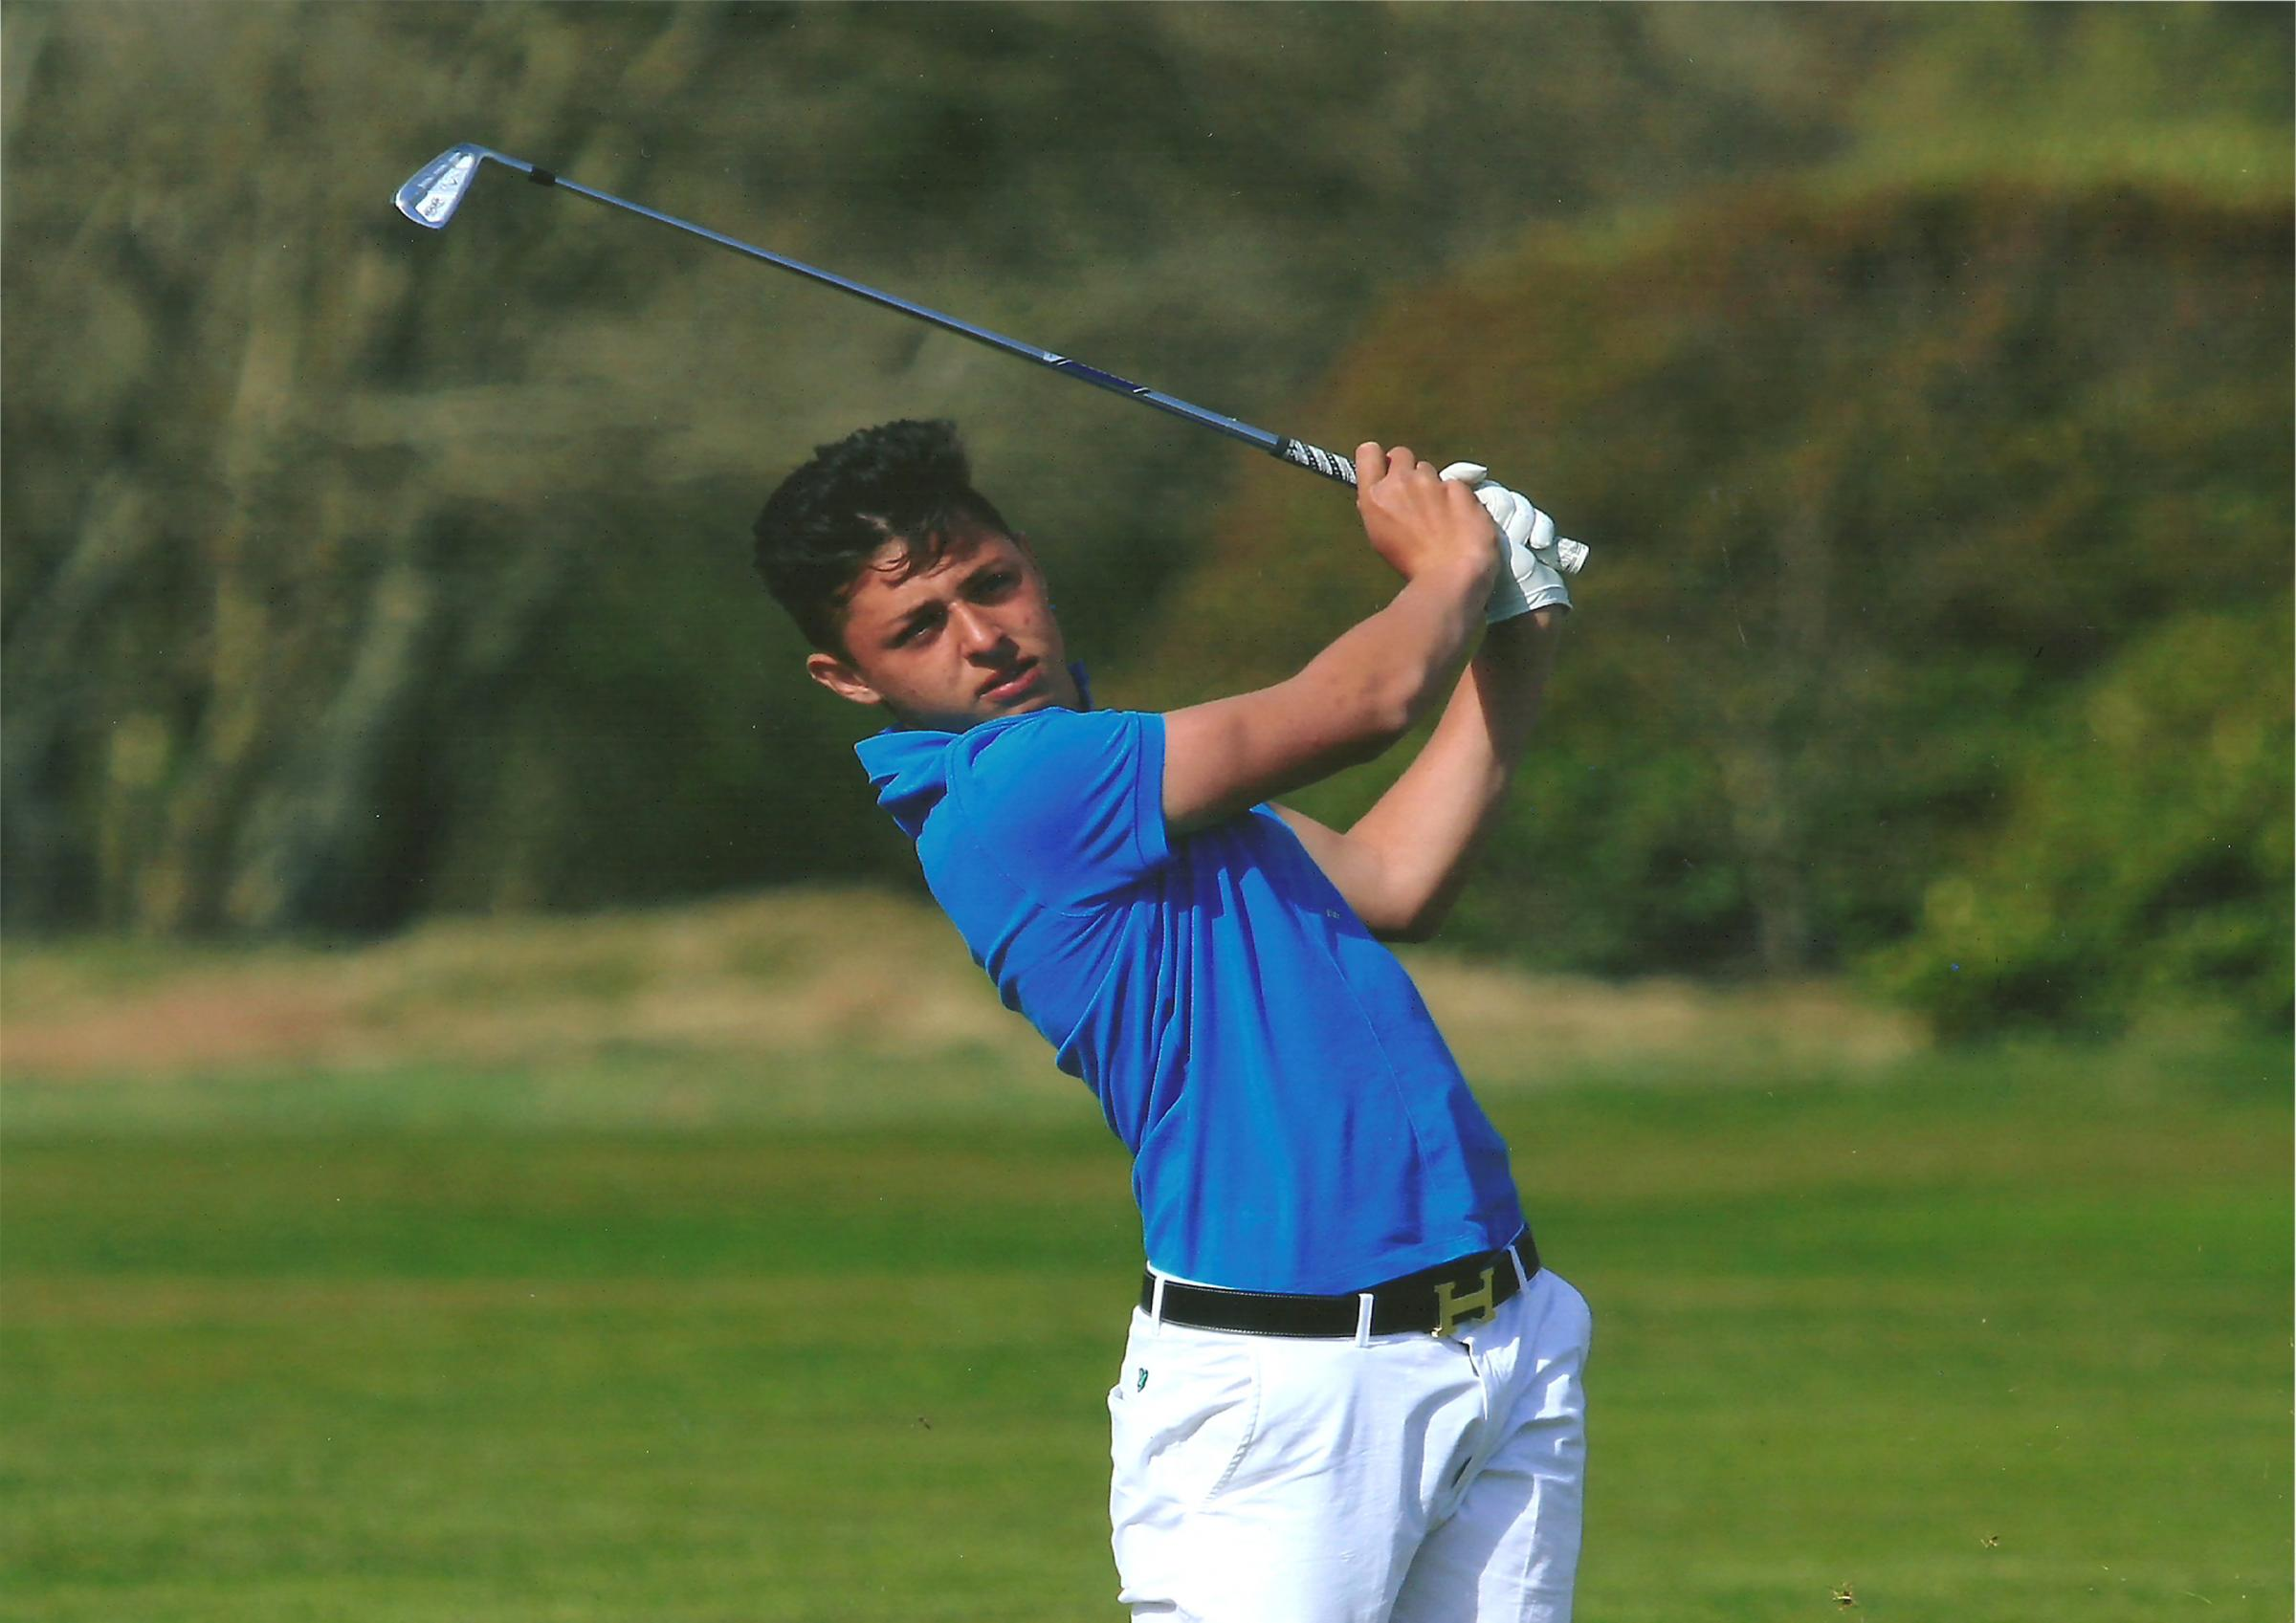 Marco Penge wants to play on the European Tour this season